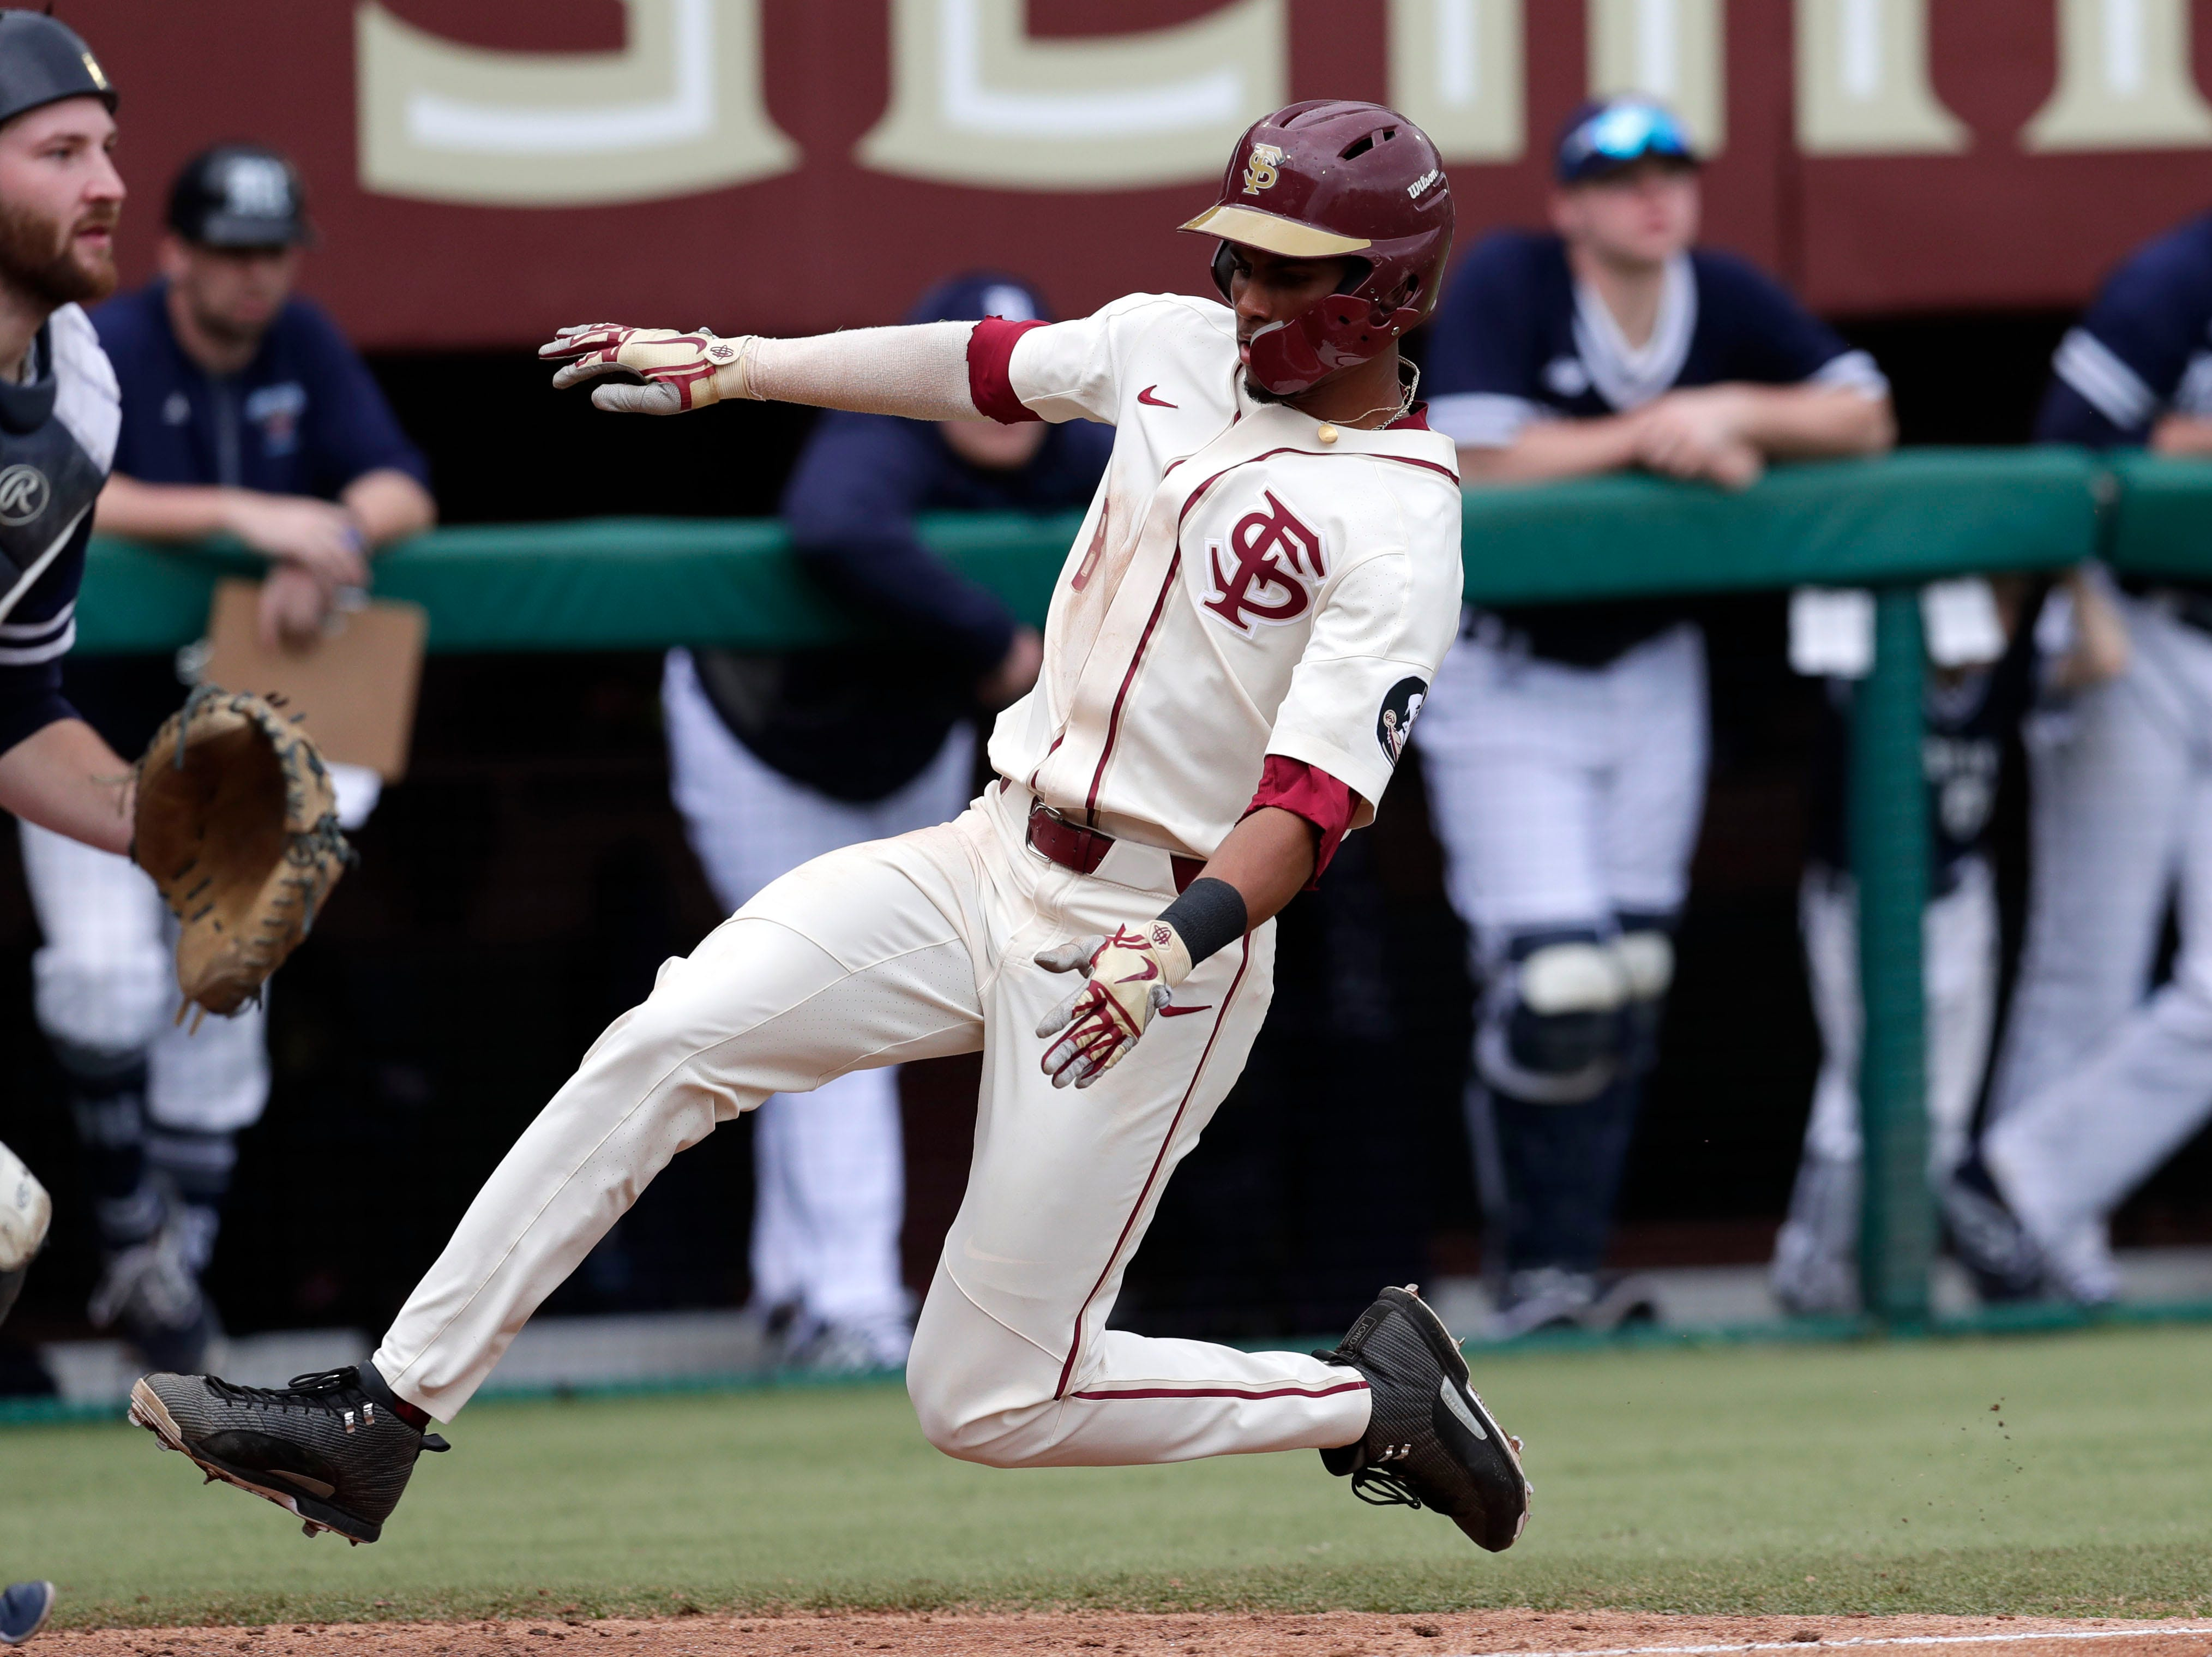 Florida State Seminoles outfielder/right handed Pitcher J.C. Flowers (8) slides into home plate to score another run for the Seminoles. The Florida State Seminoles host the Maine Black Bears for the second game of the series, Saturday Feb. 16, 2019.